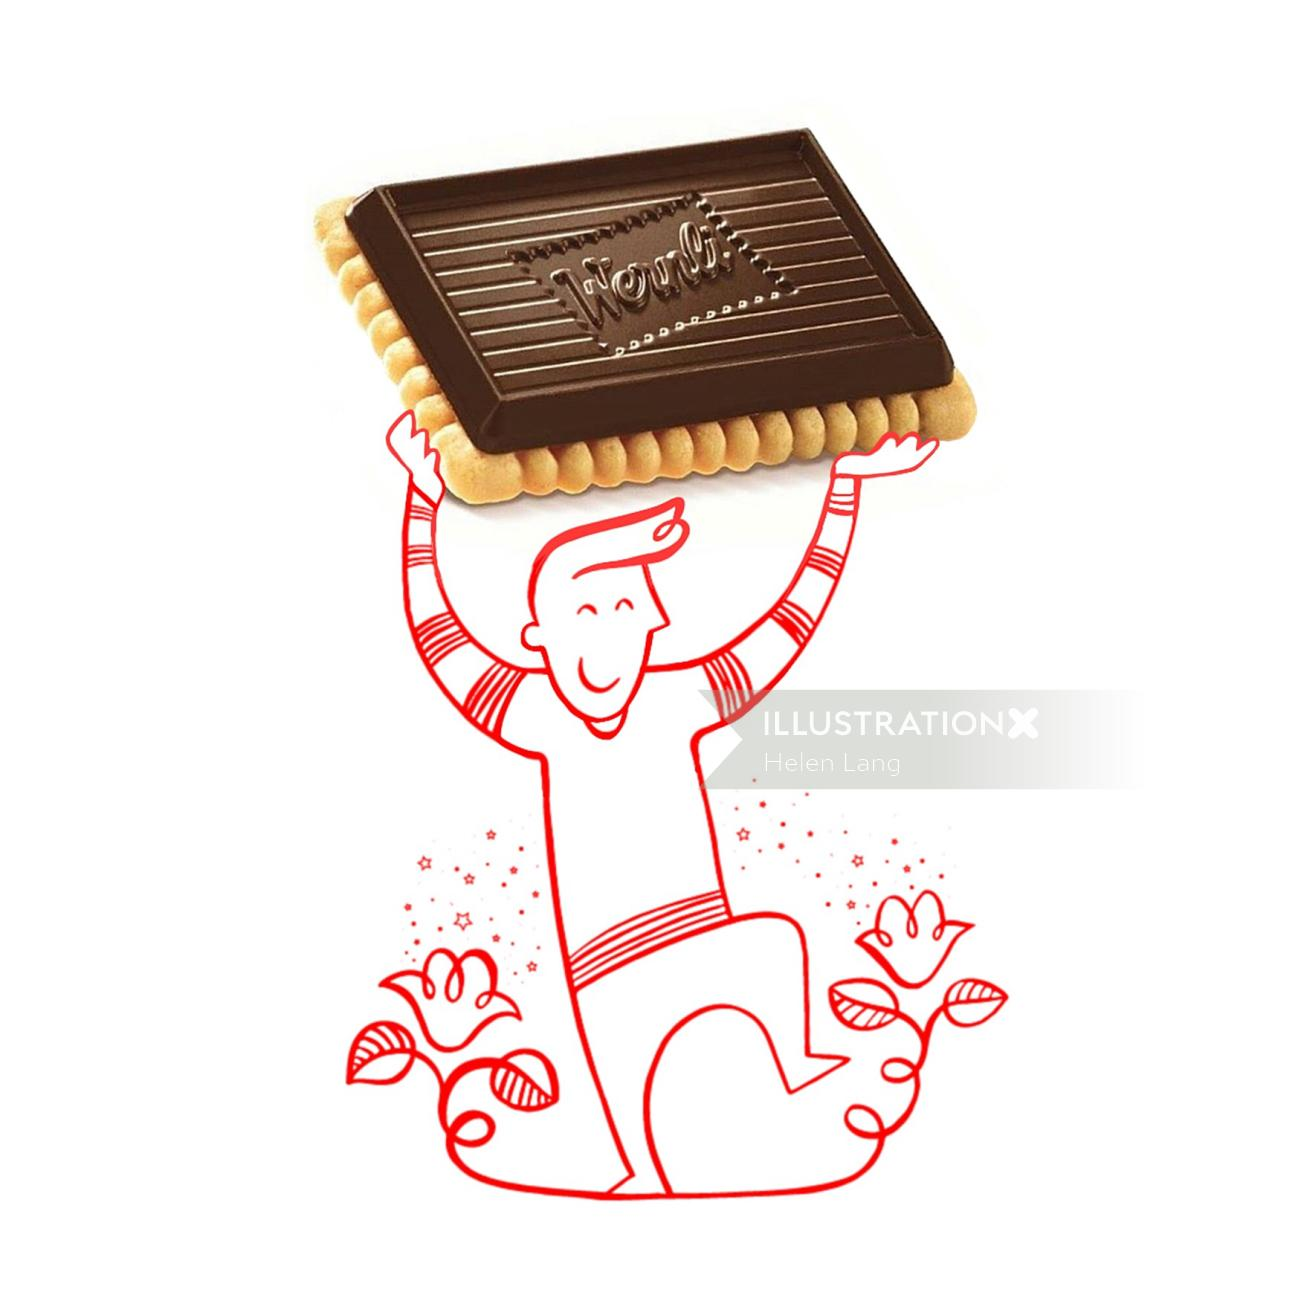 Wernli AG Biscuits advertising illustration